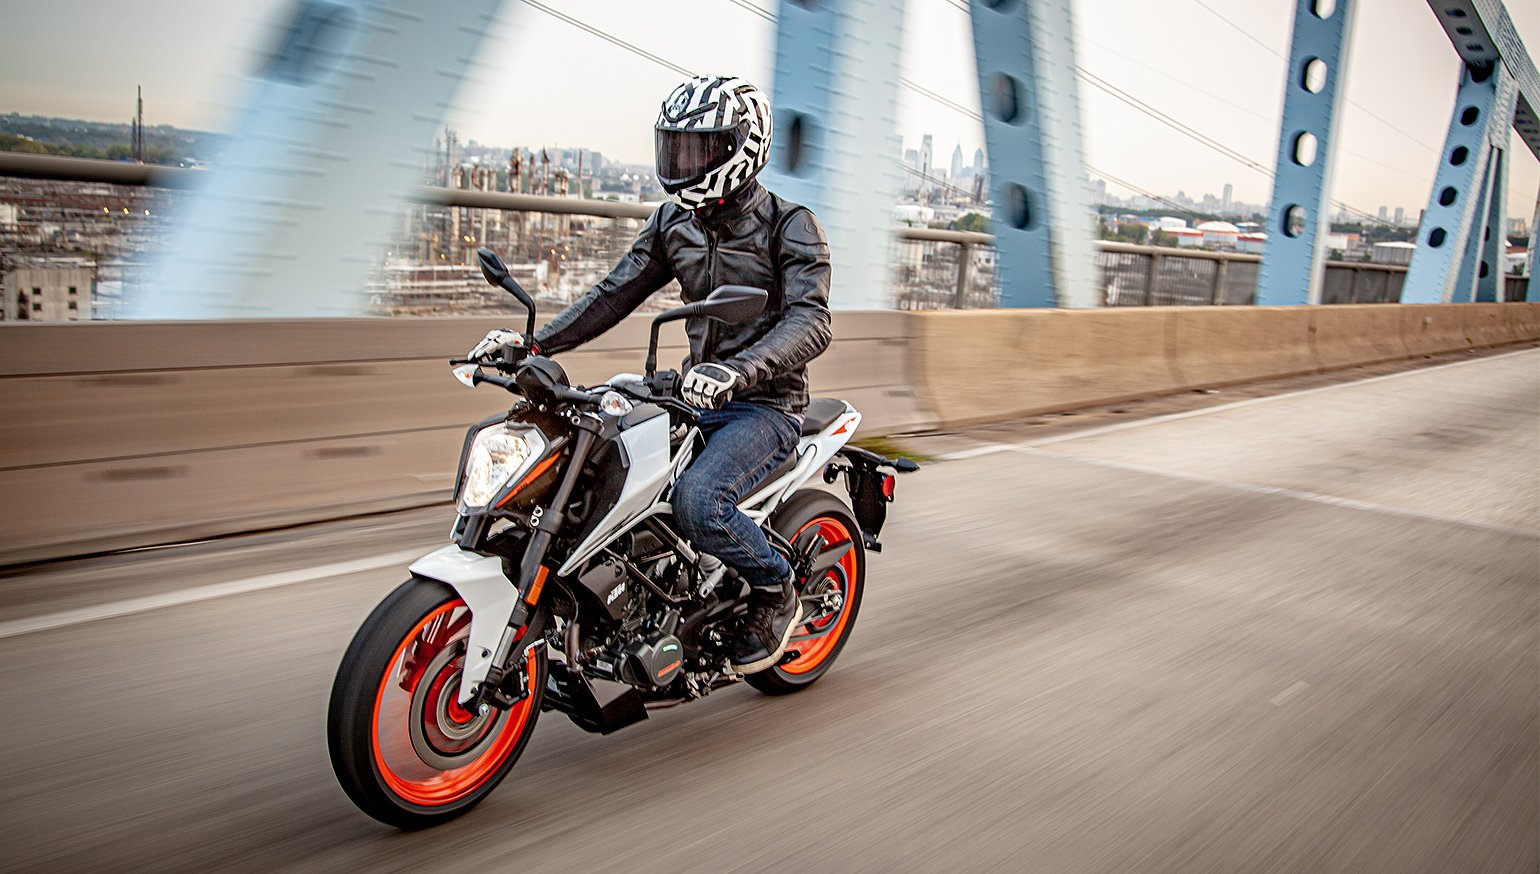 2020 KTM 200 Duke first ride review